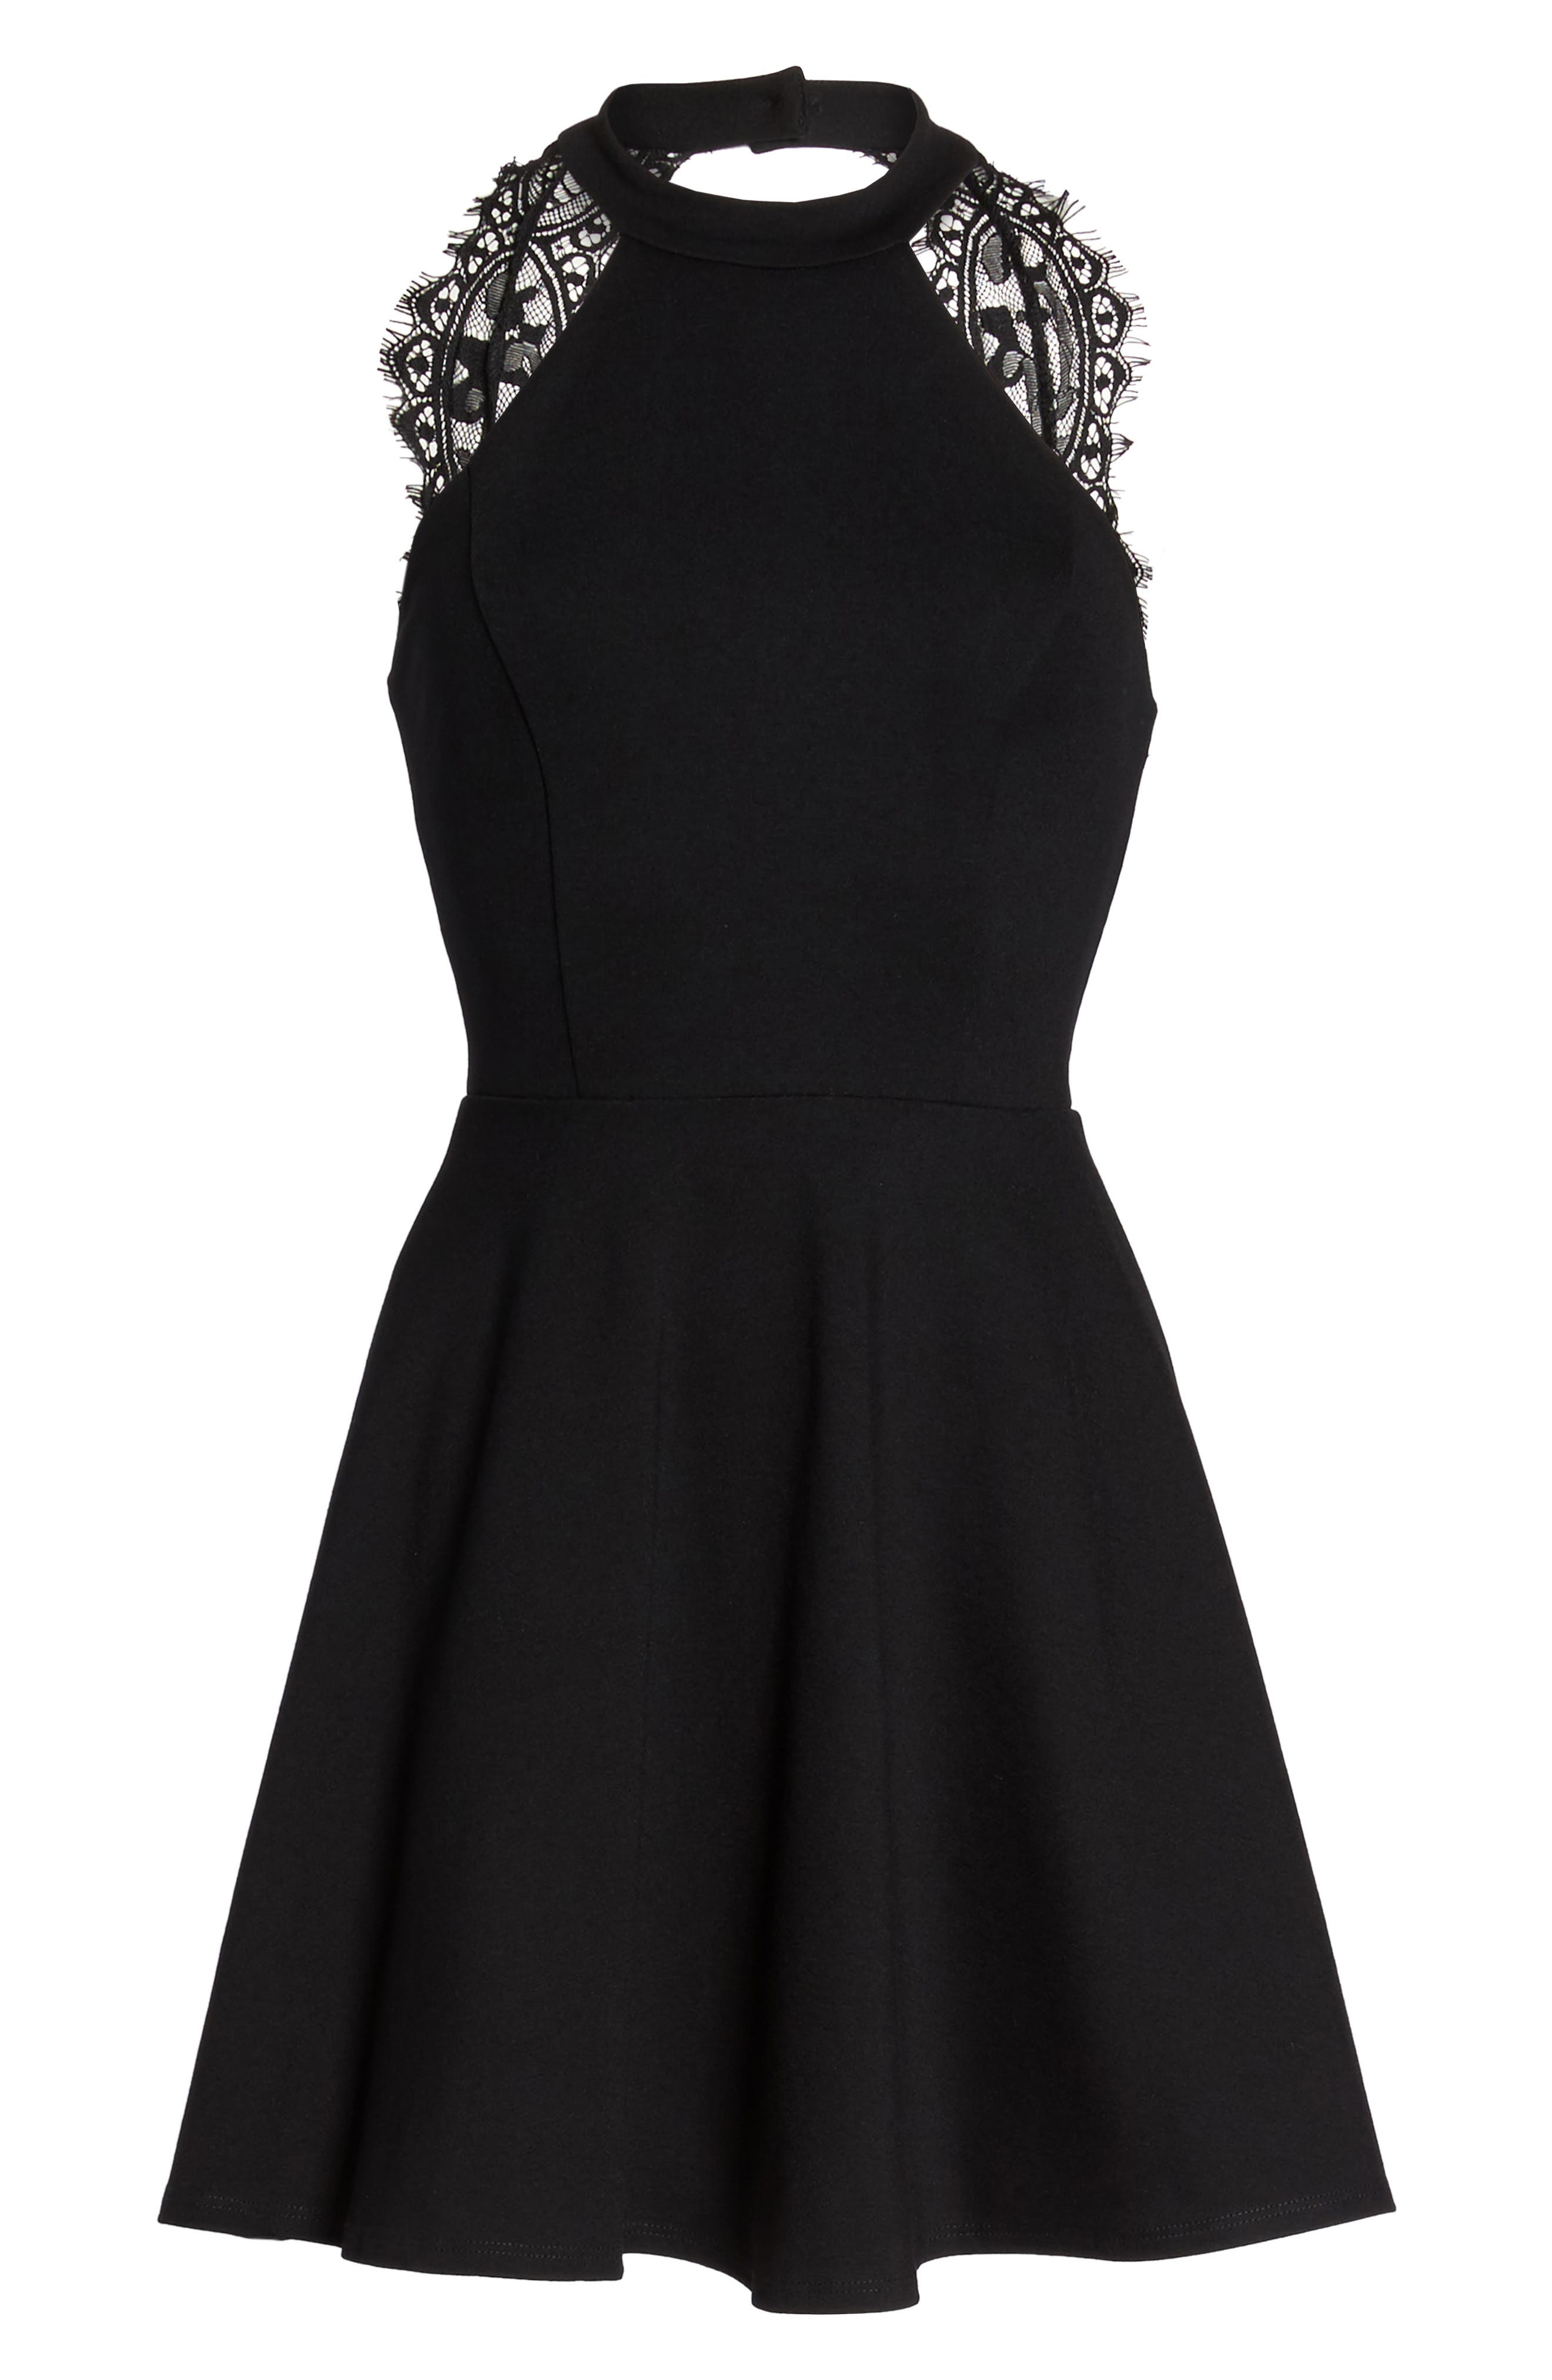 Endlessly Alluring Lace Trim Fit & Flare Dress,                             Alternate thumbnail 6, color,                             001